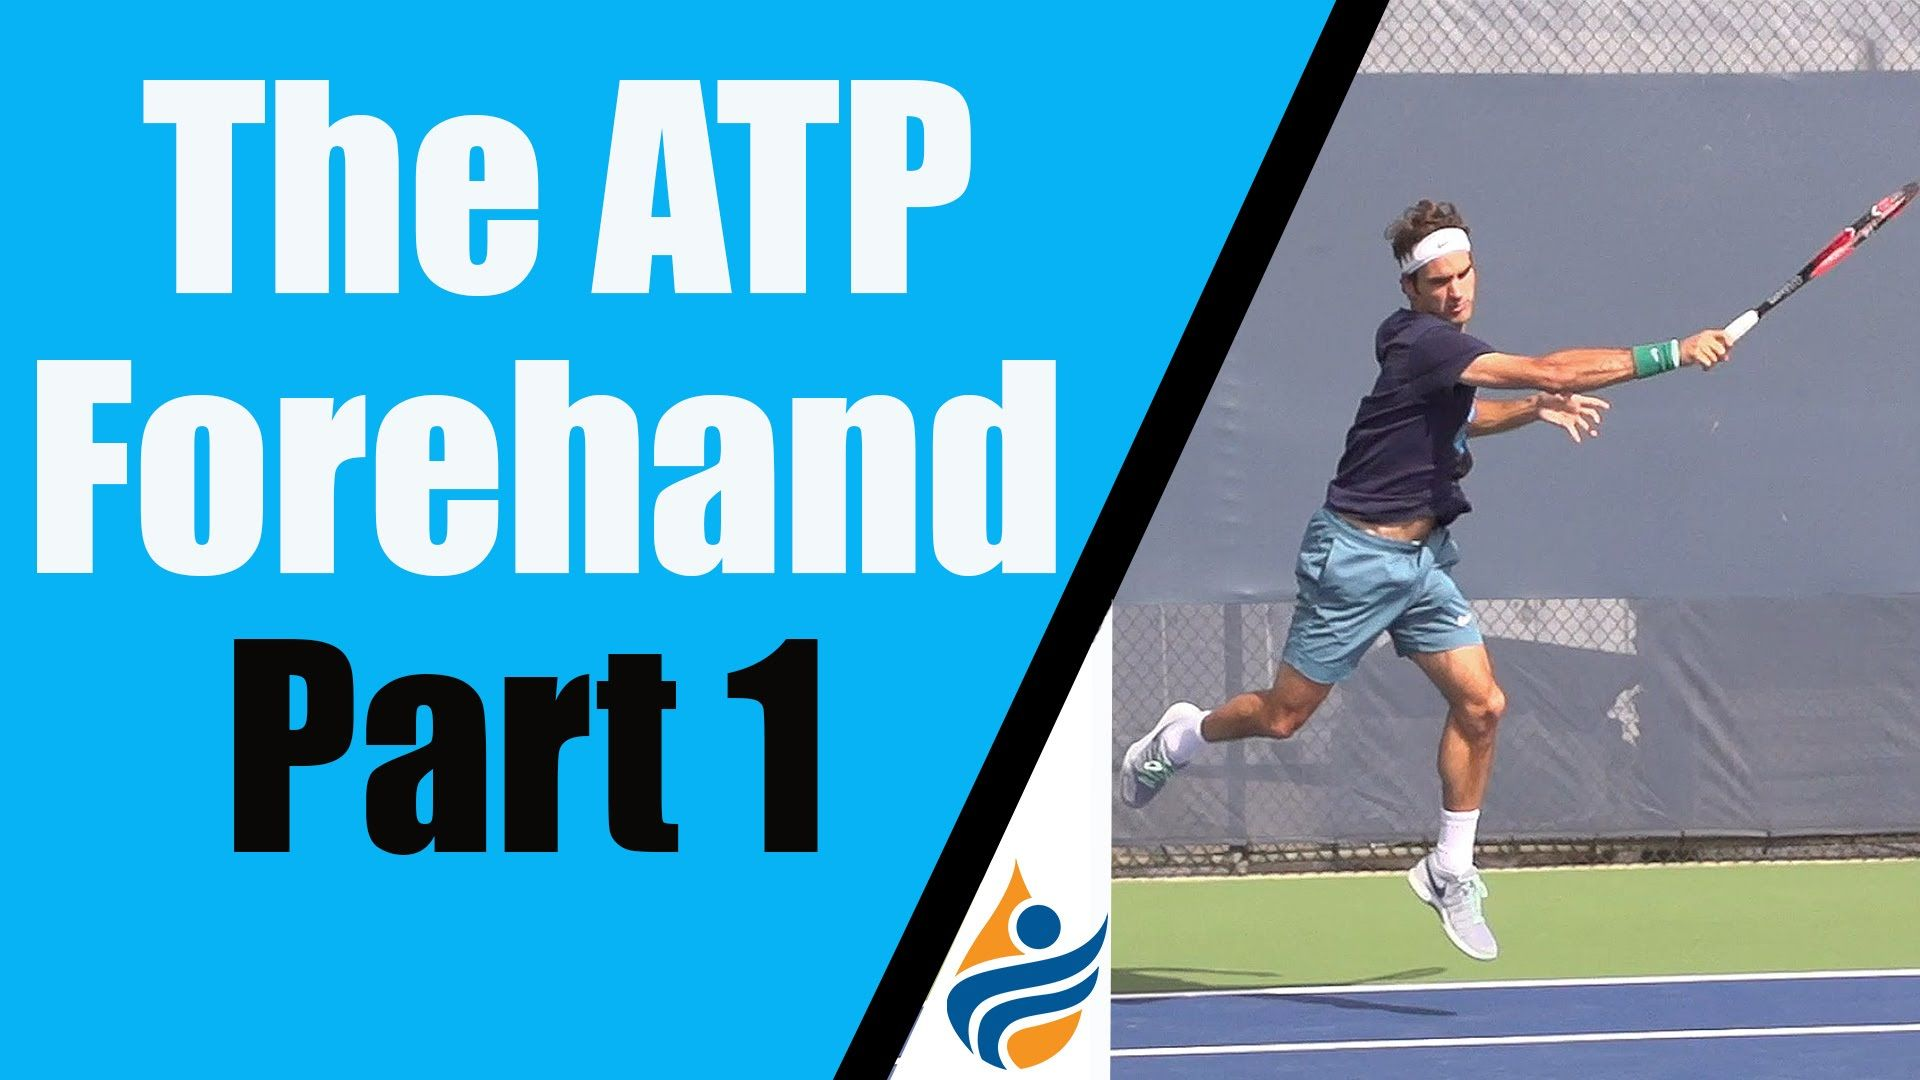 The Atp Ssc Forehand Part 1 Parts Cover